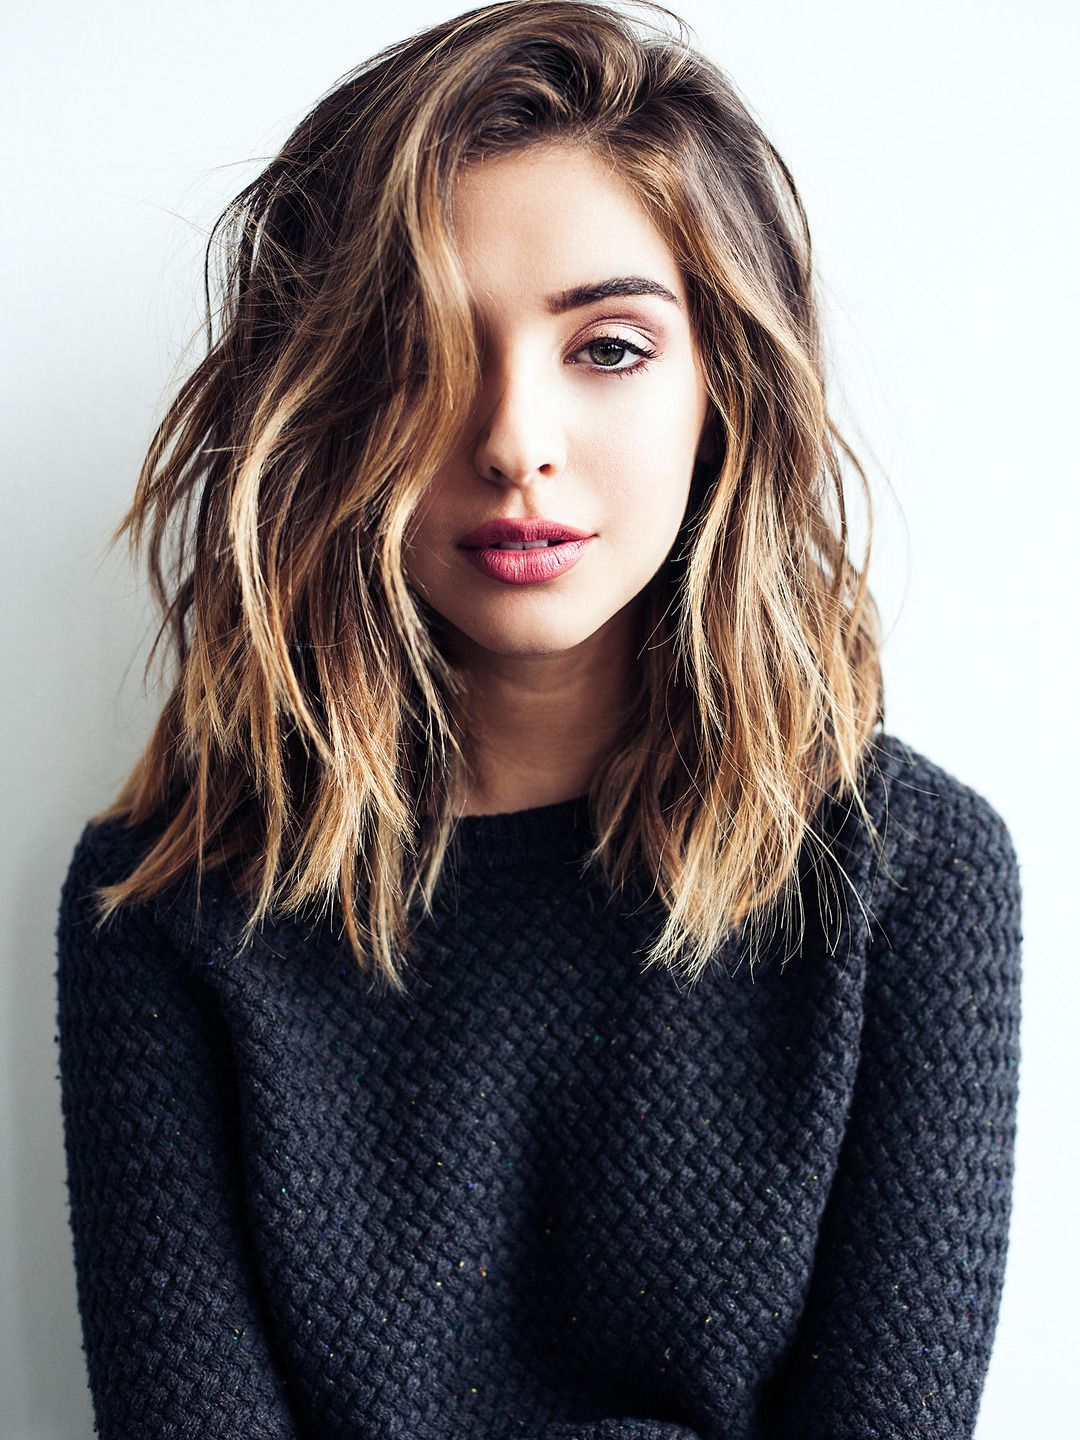 Phenomenal Bobs Medium Length Bobs And A Line On Pinterest Short Hairstyles Gunalazisus